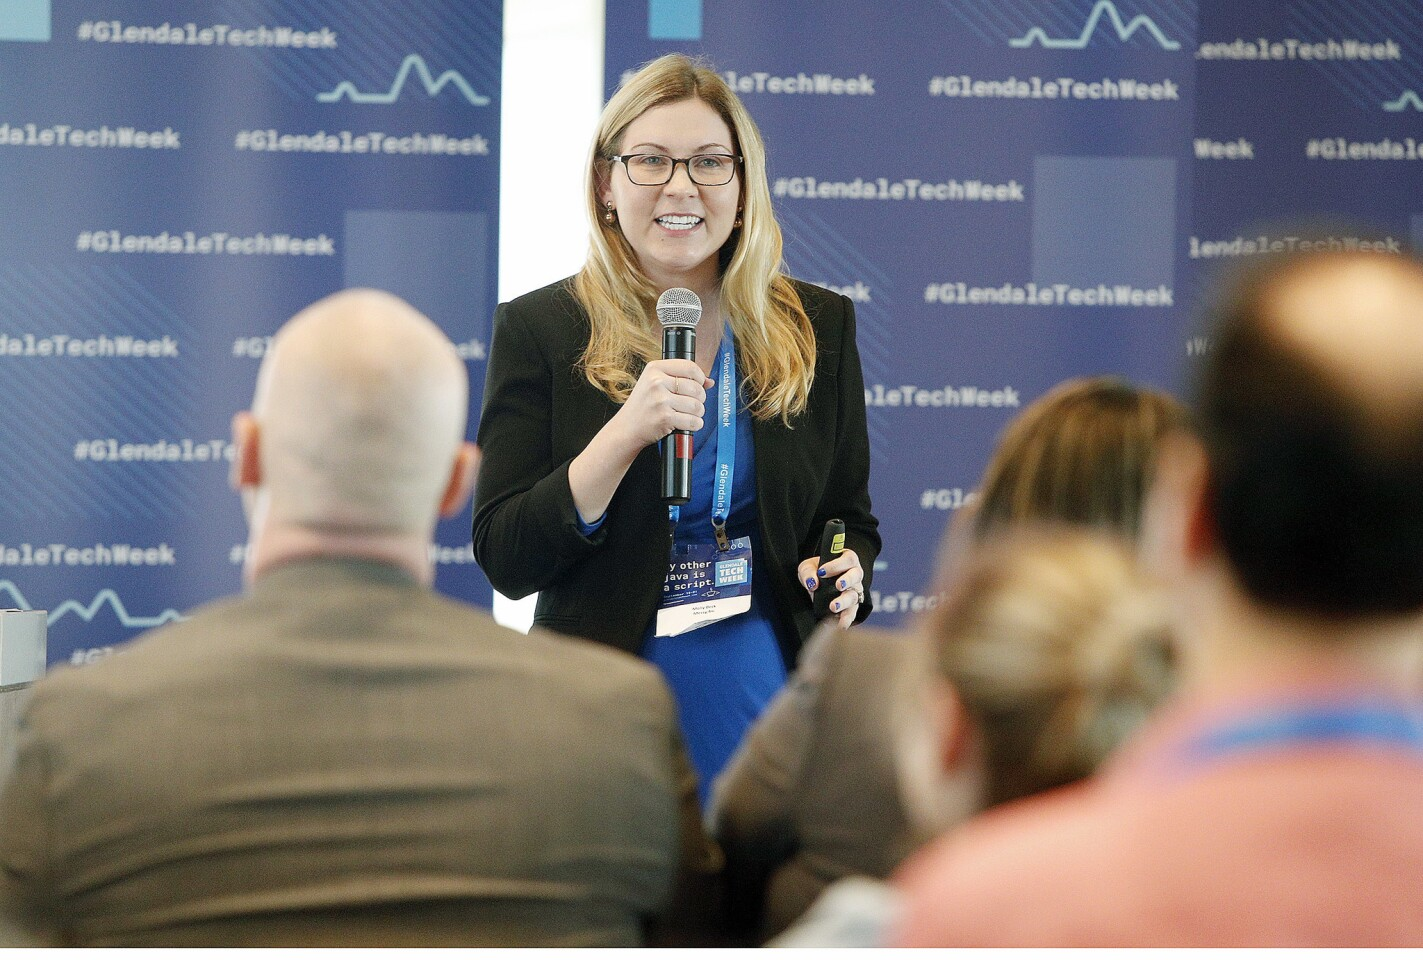 Molly Beck, of Messy.fm, pitches a line of judges about her company for PitchFest, part of Glendale's 2018 Tech Week at CBRE in Glendale on Thursday, September 20, 2018. PitchFest is a Shark Tank-like opportunity for companies to pitch their business ideas to a panel, with the hopes of taking home a $60,000 prize.